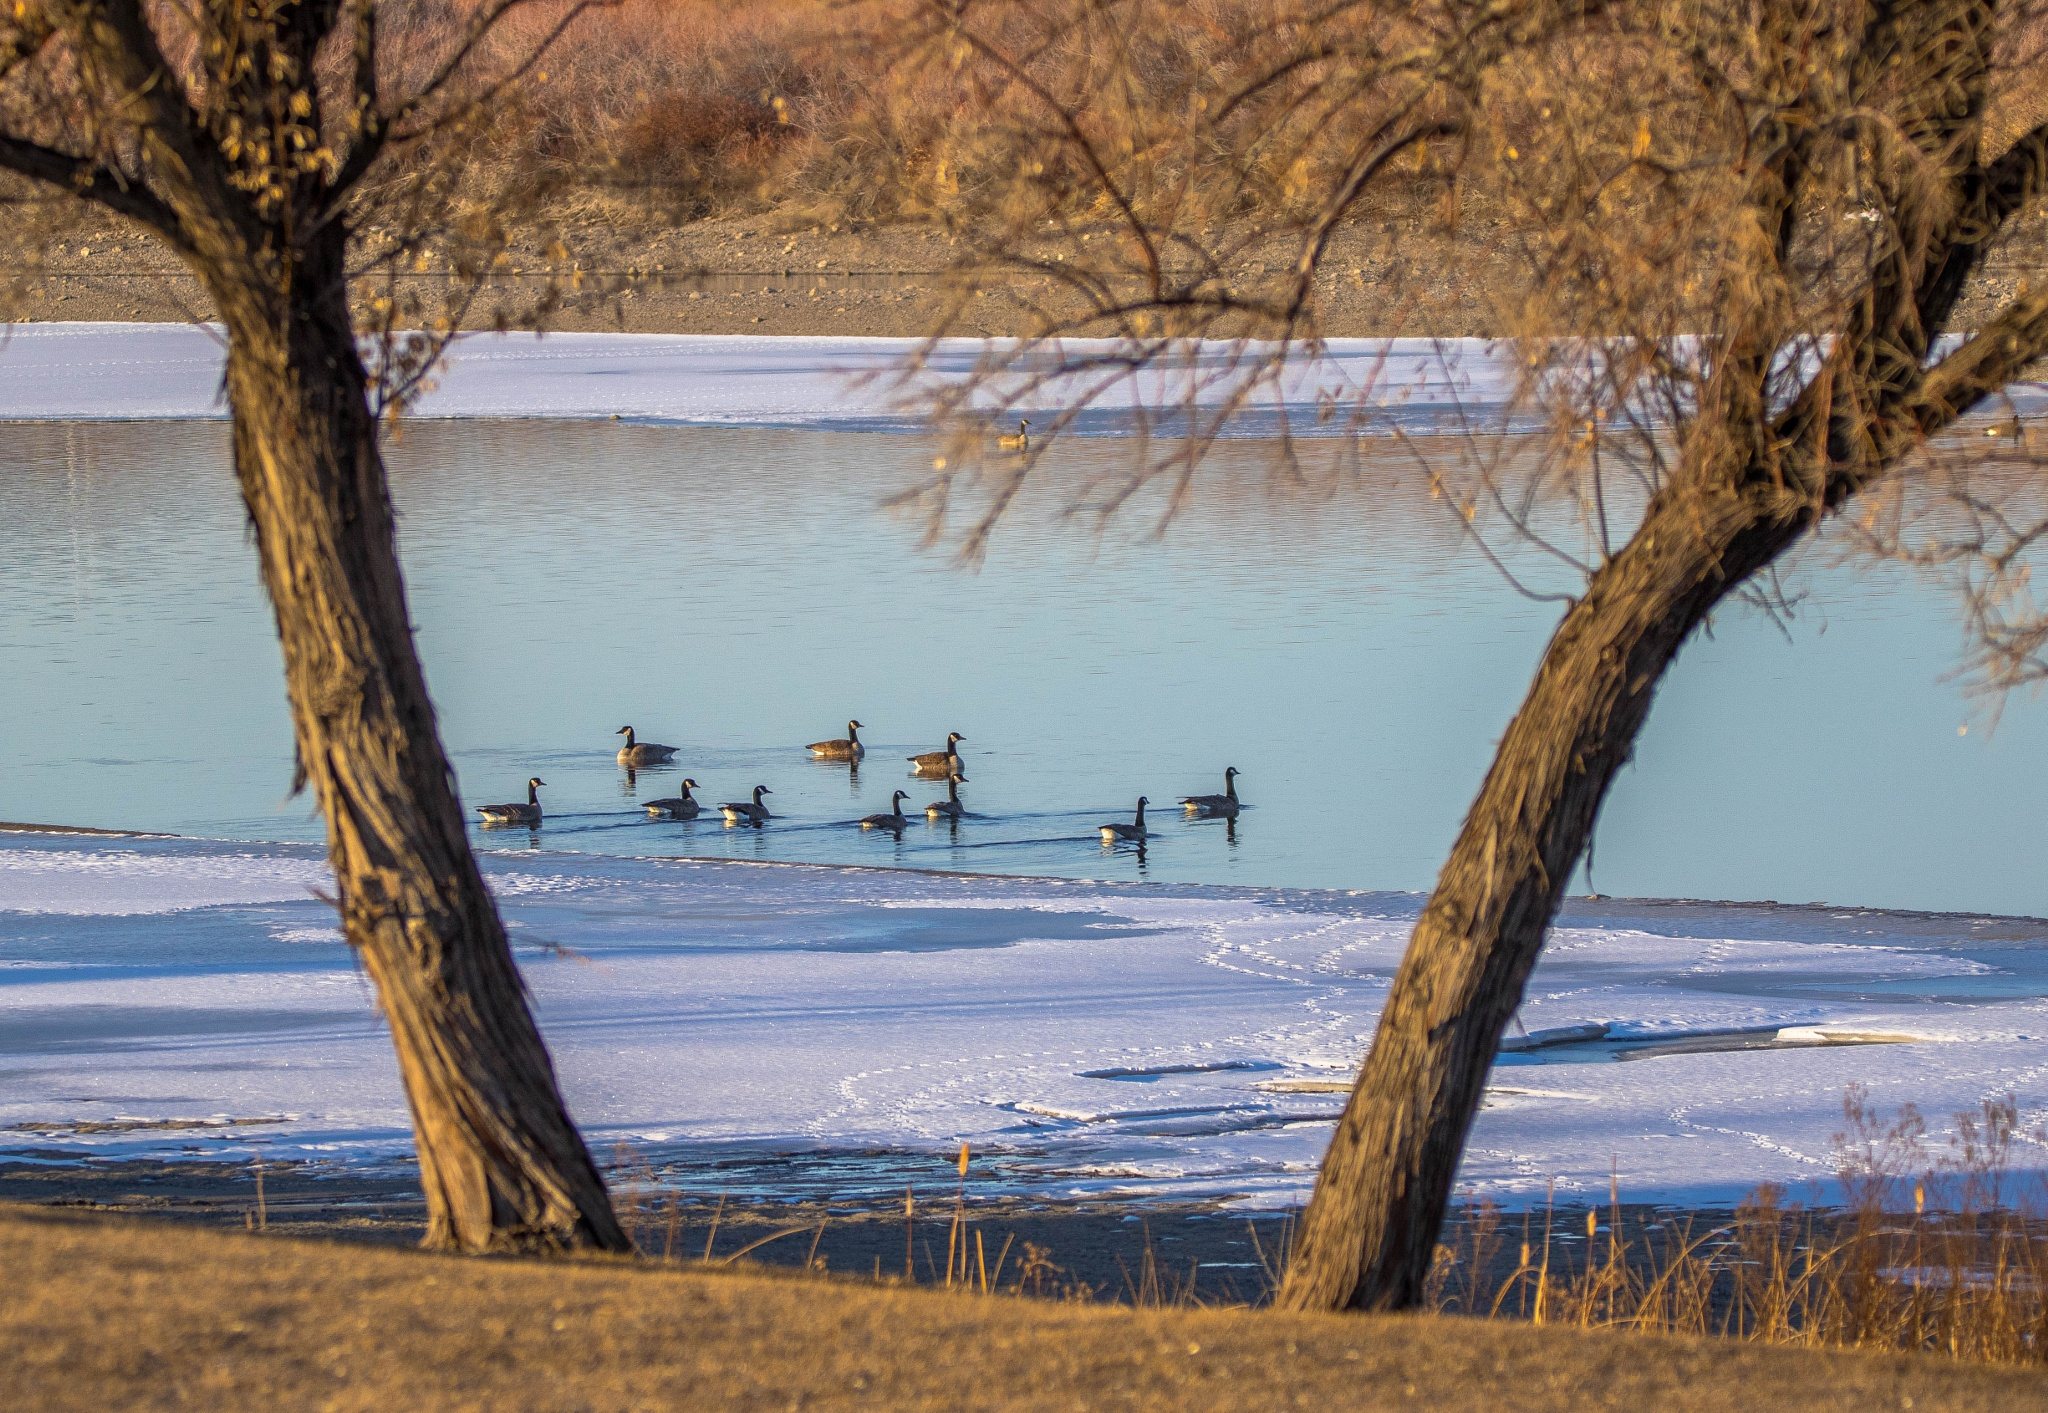 Calm Geese Morning by drchad480